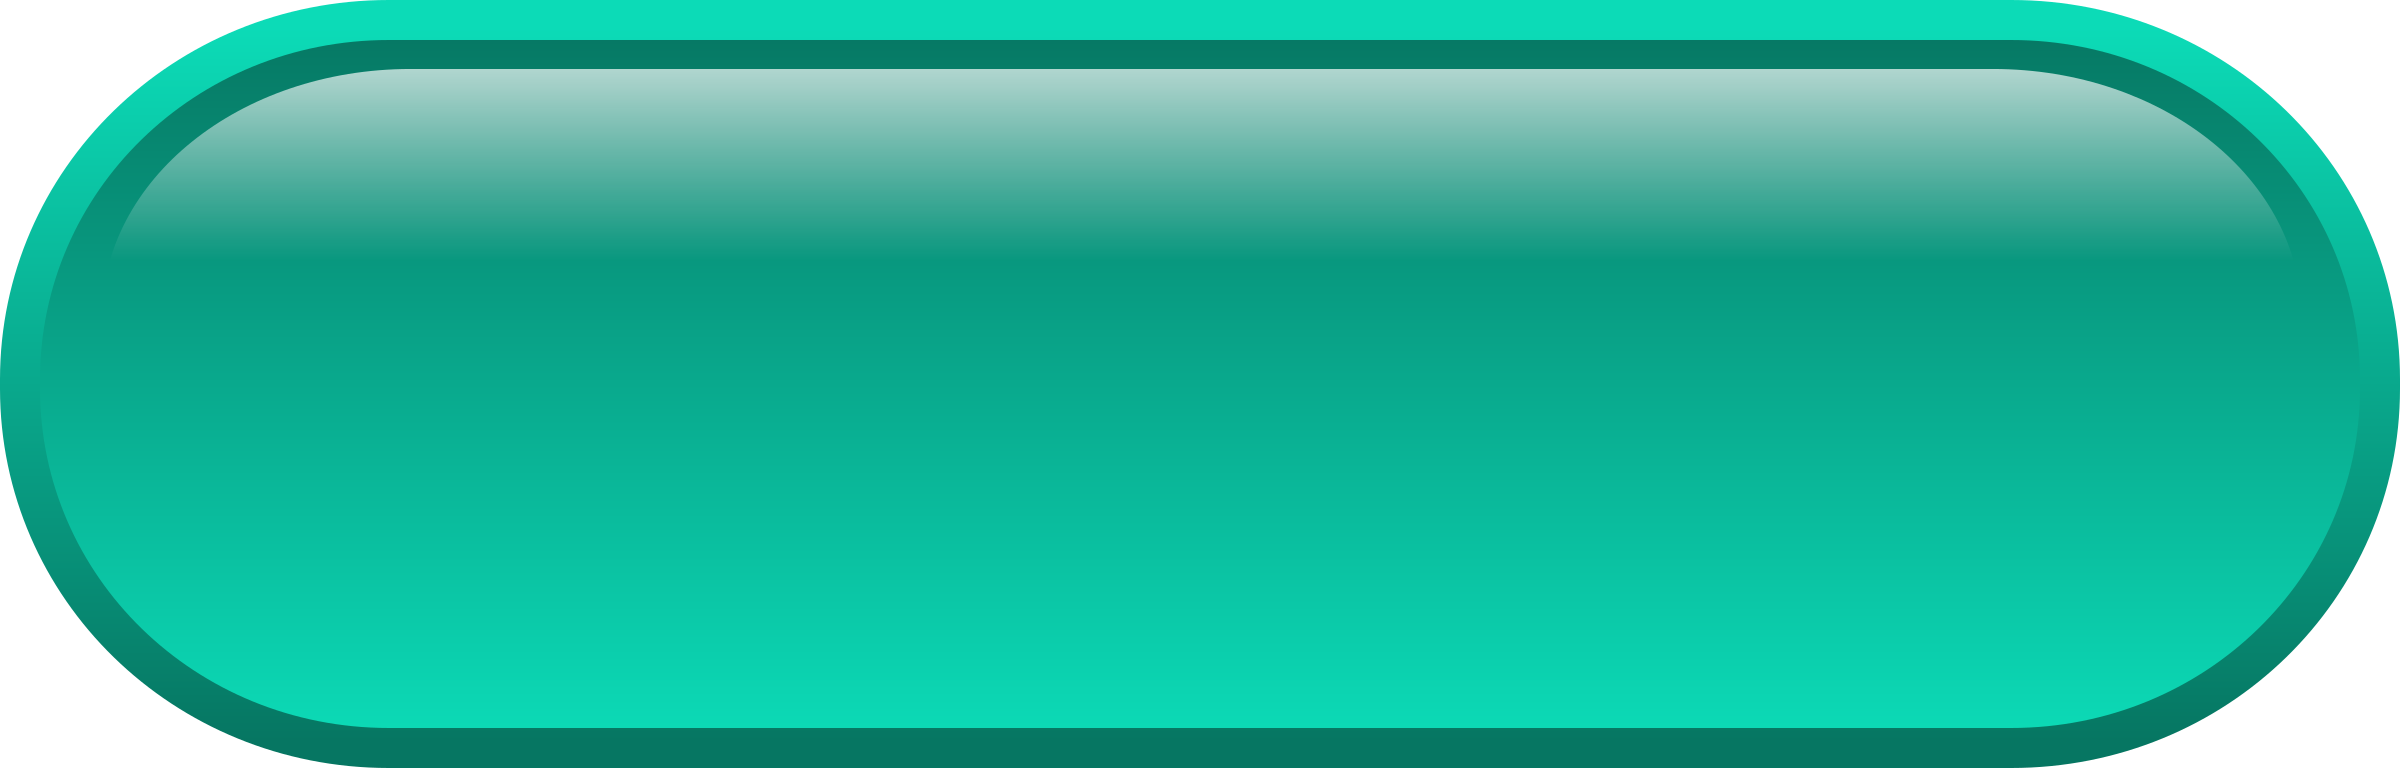 Transparent png blank buttons. Pill button cyan icons